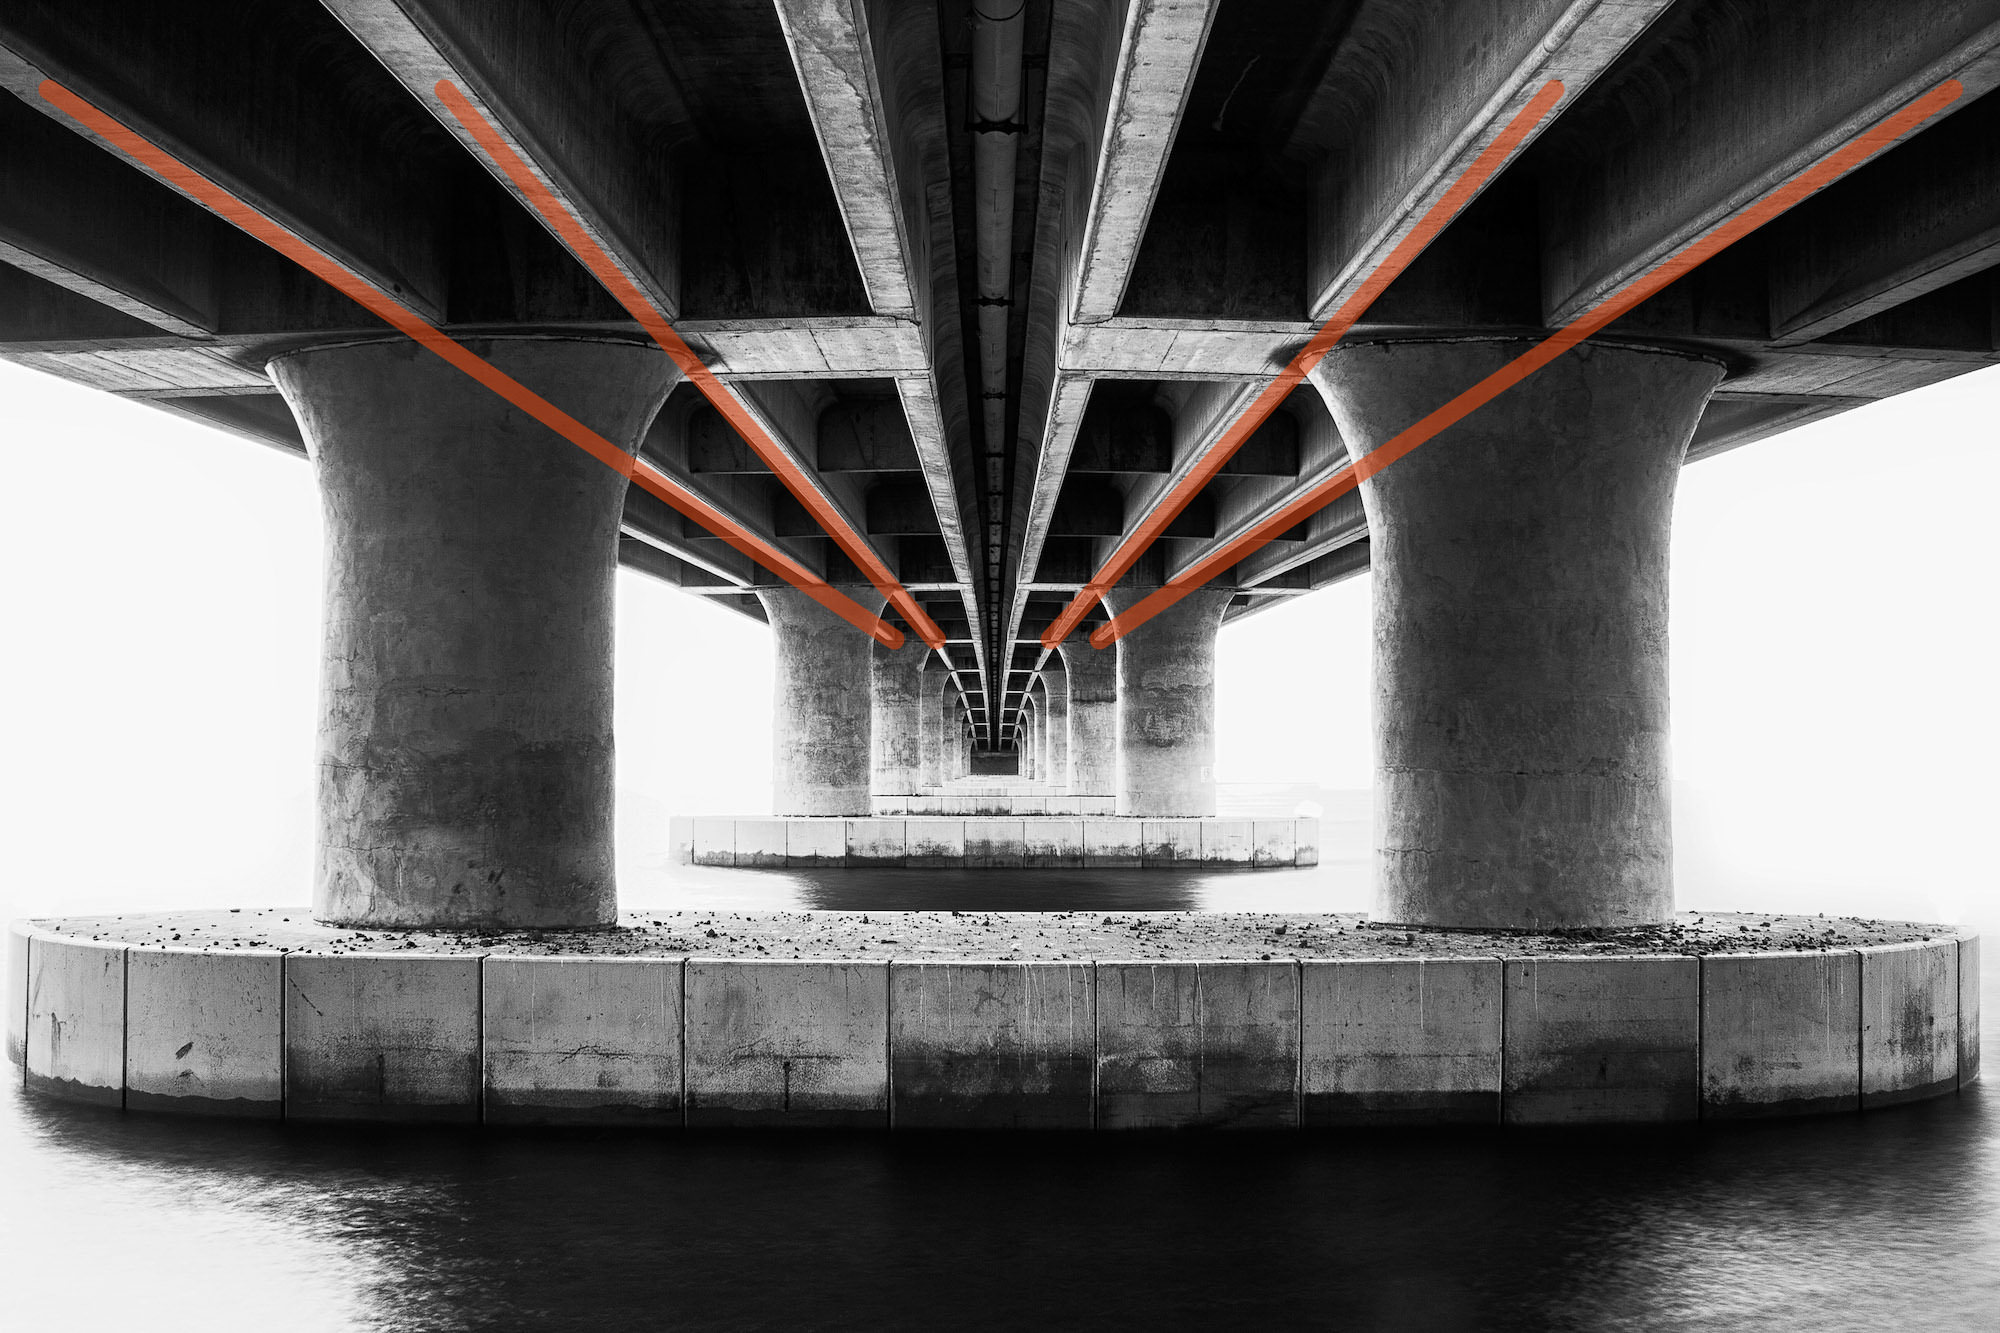 Concrete convergence photographed from underneath a bridge,  with added leading lines to show the compositional technique